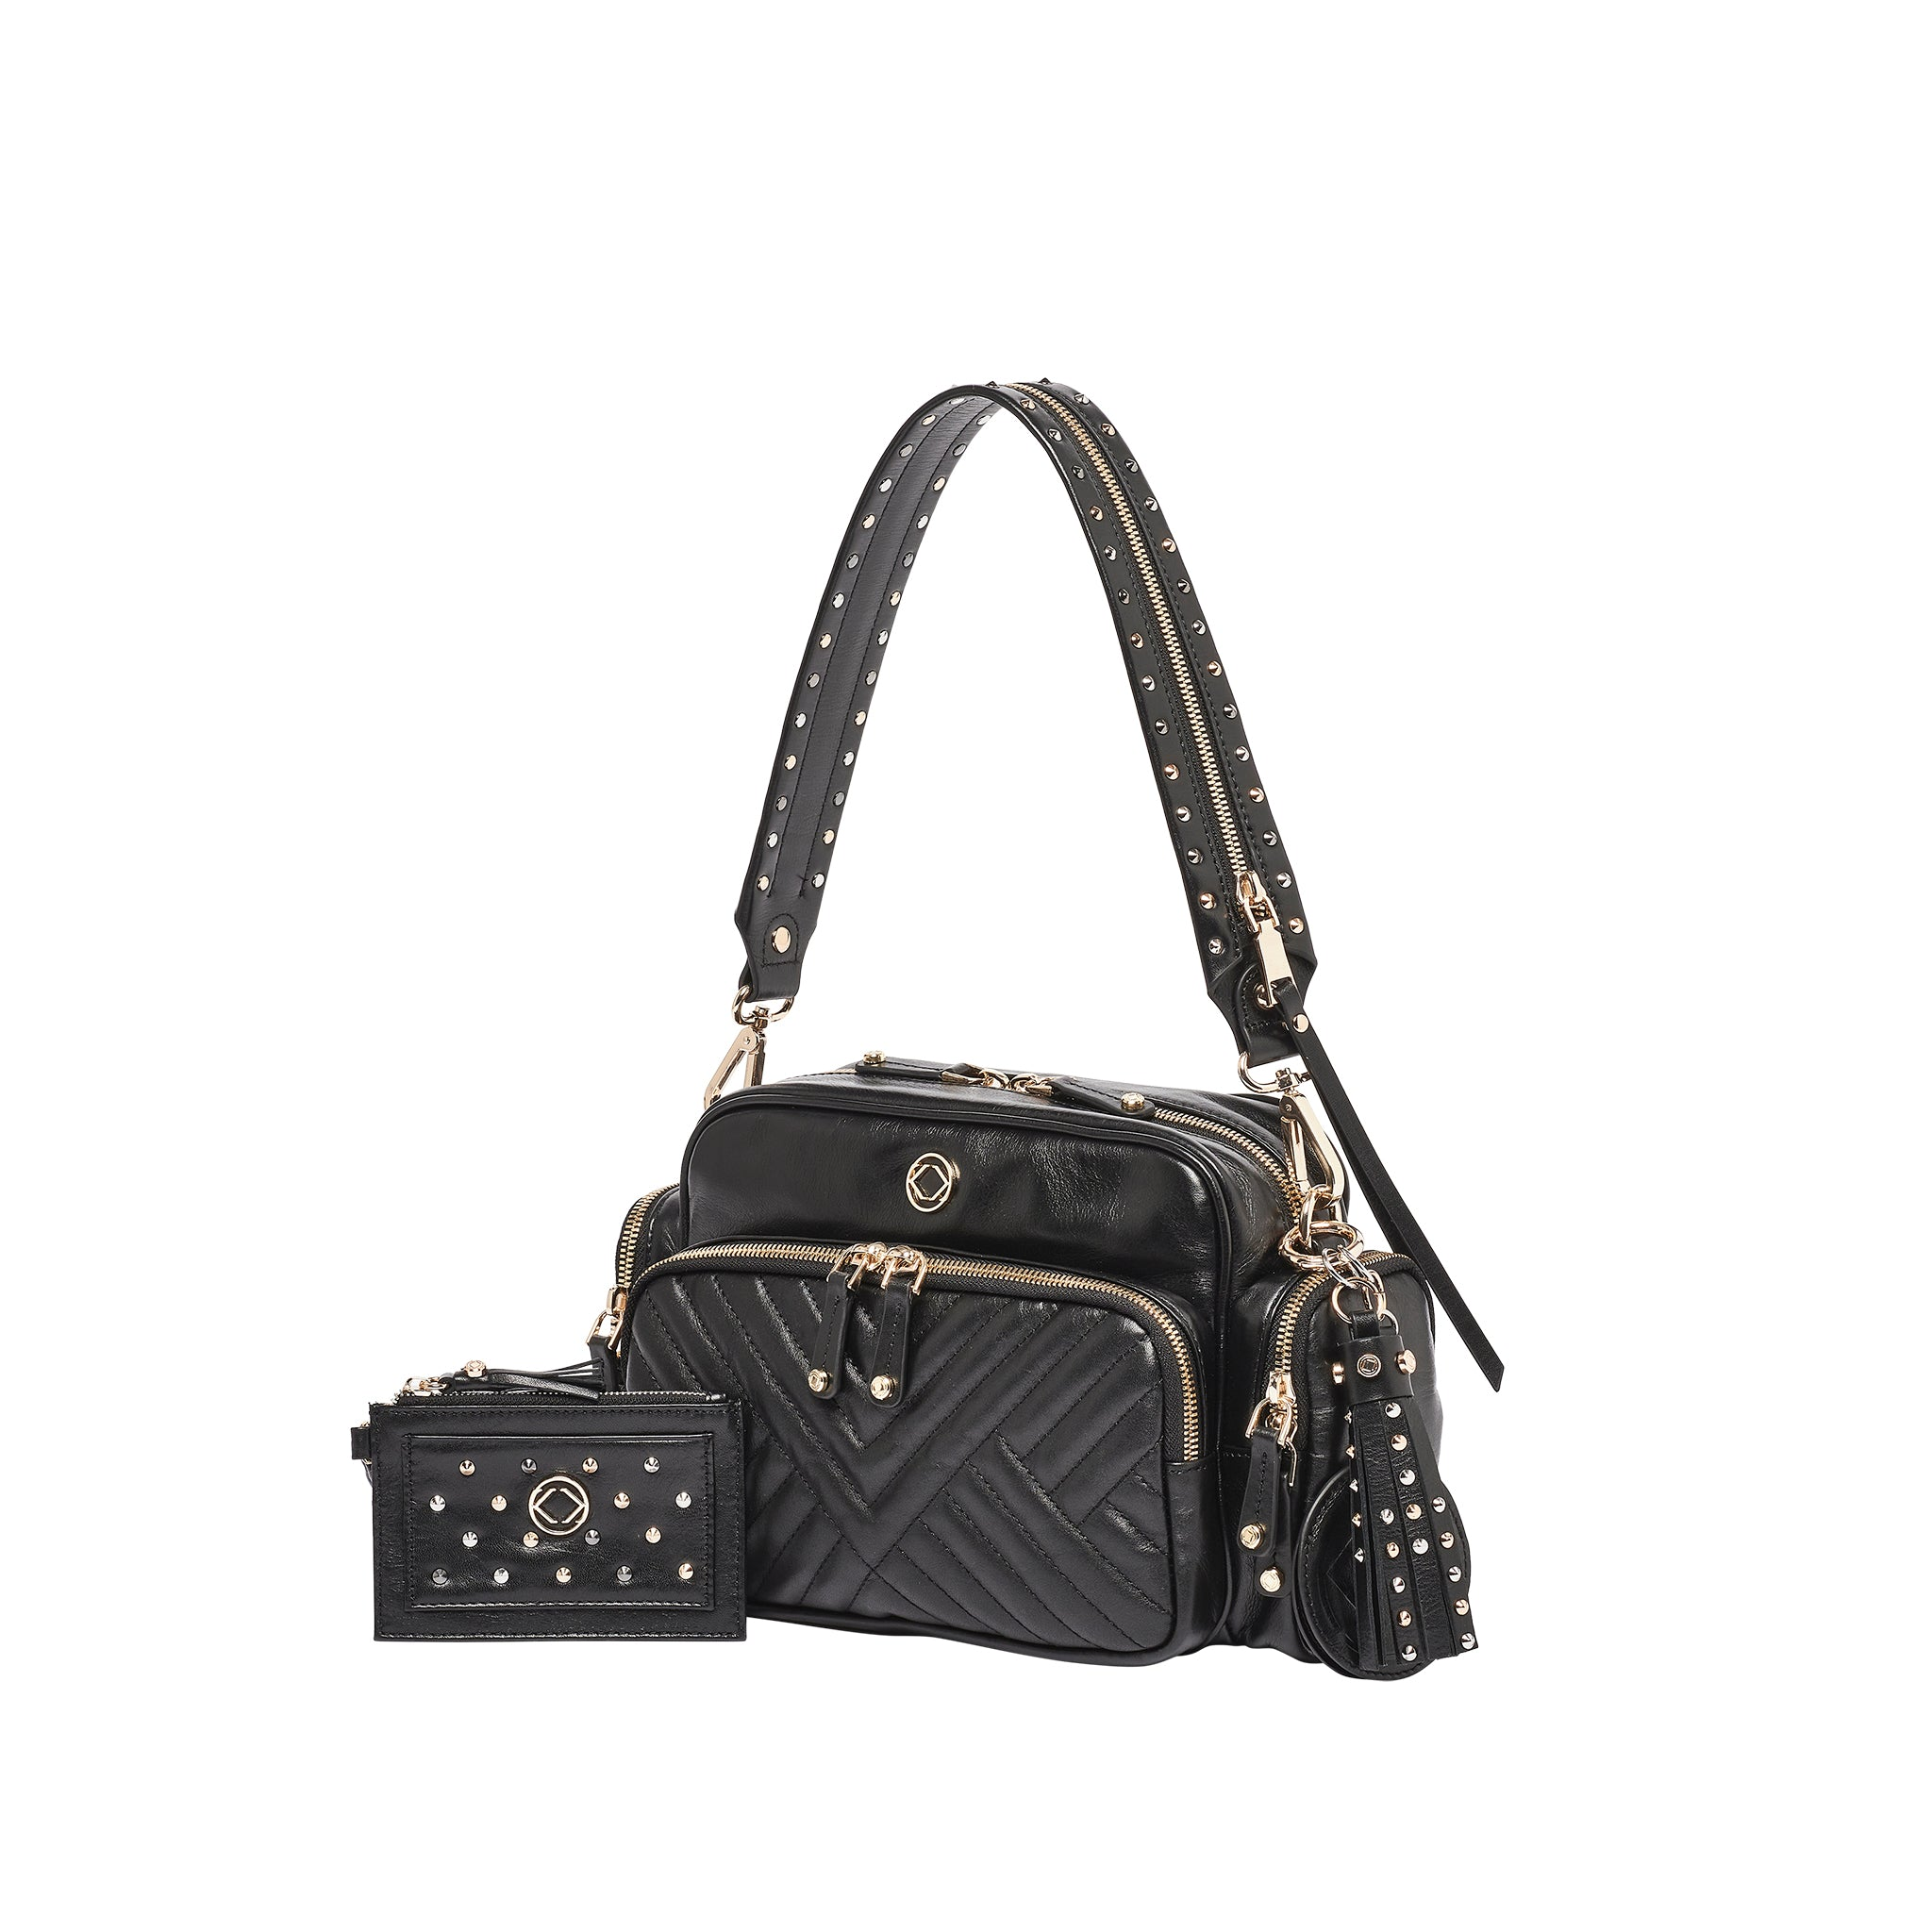 Luxury designer Greta Quilted black leather organiser baby changing bag with studded accessories